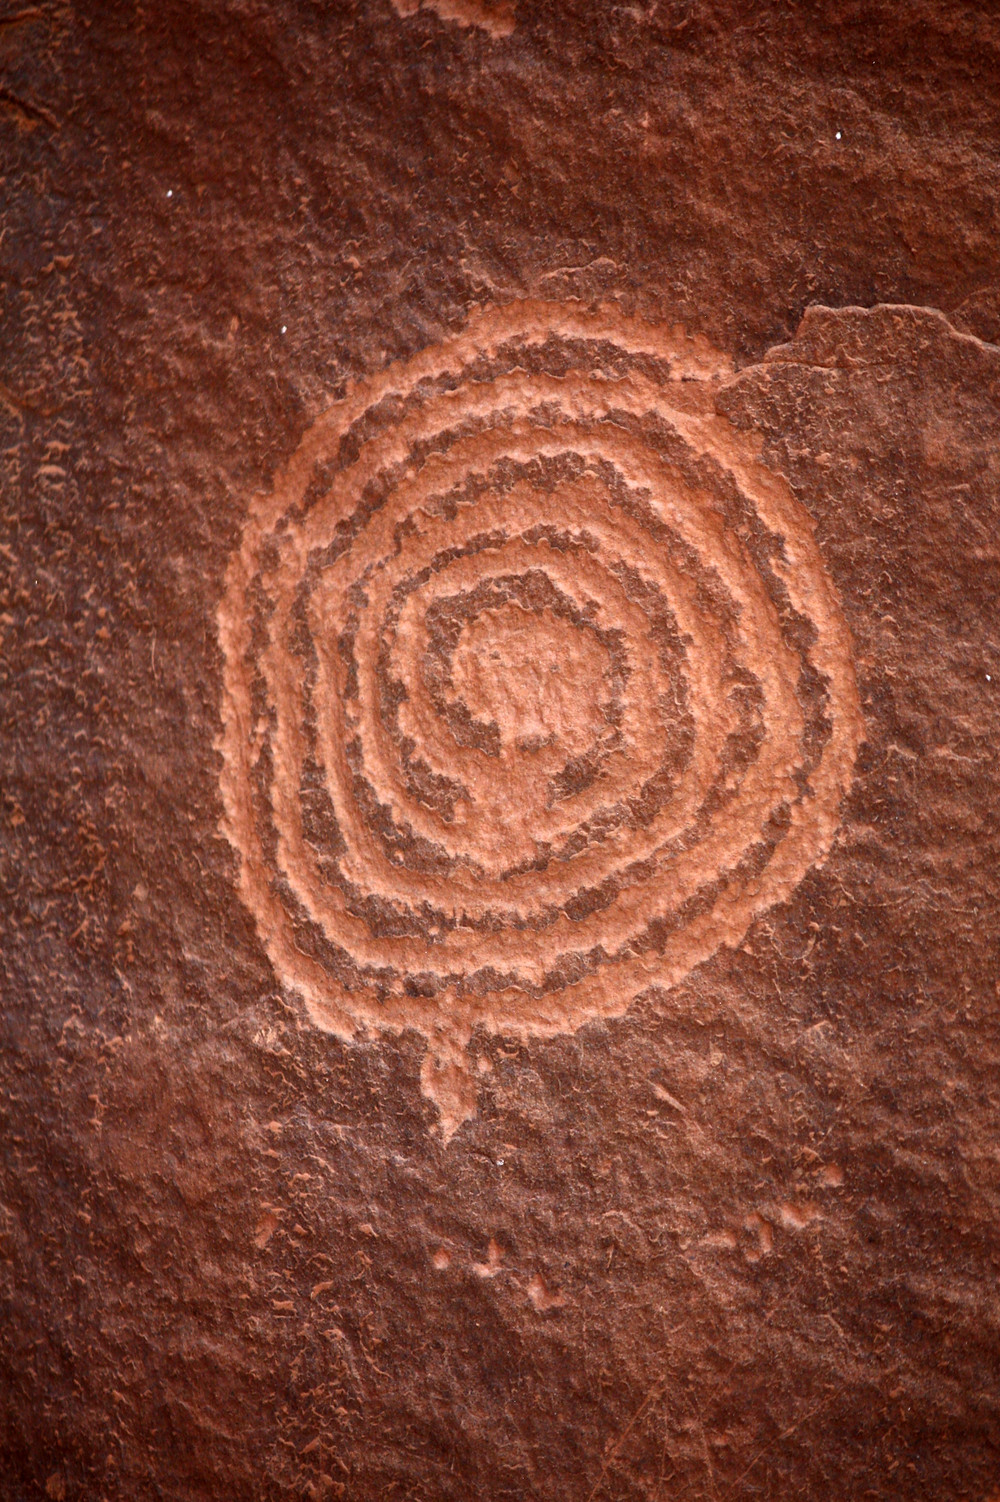 Petroglyph near Sedona, Arizona- transformation